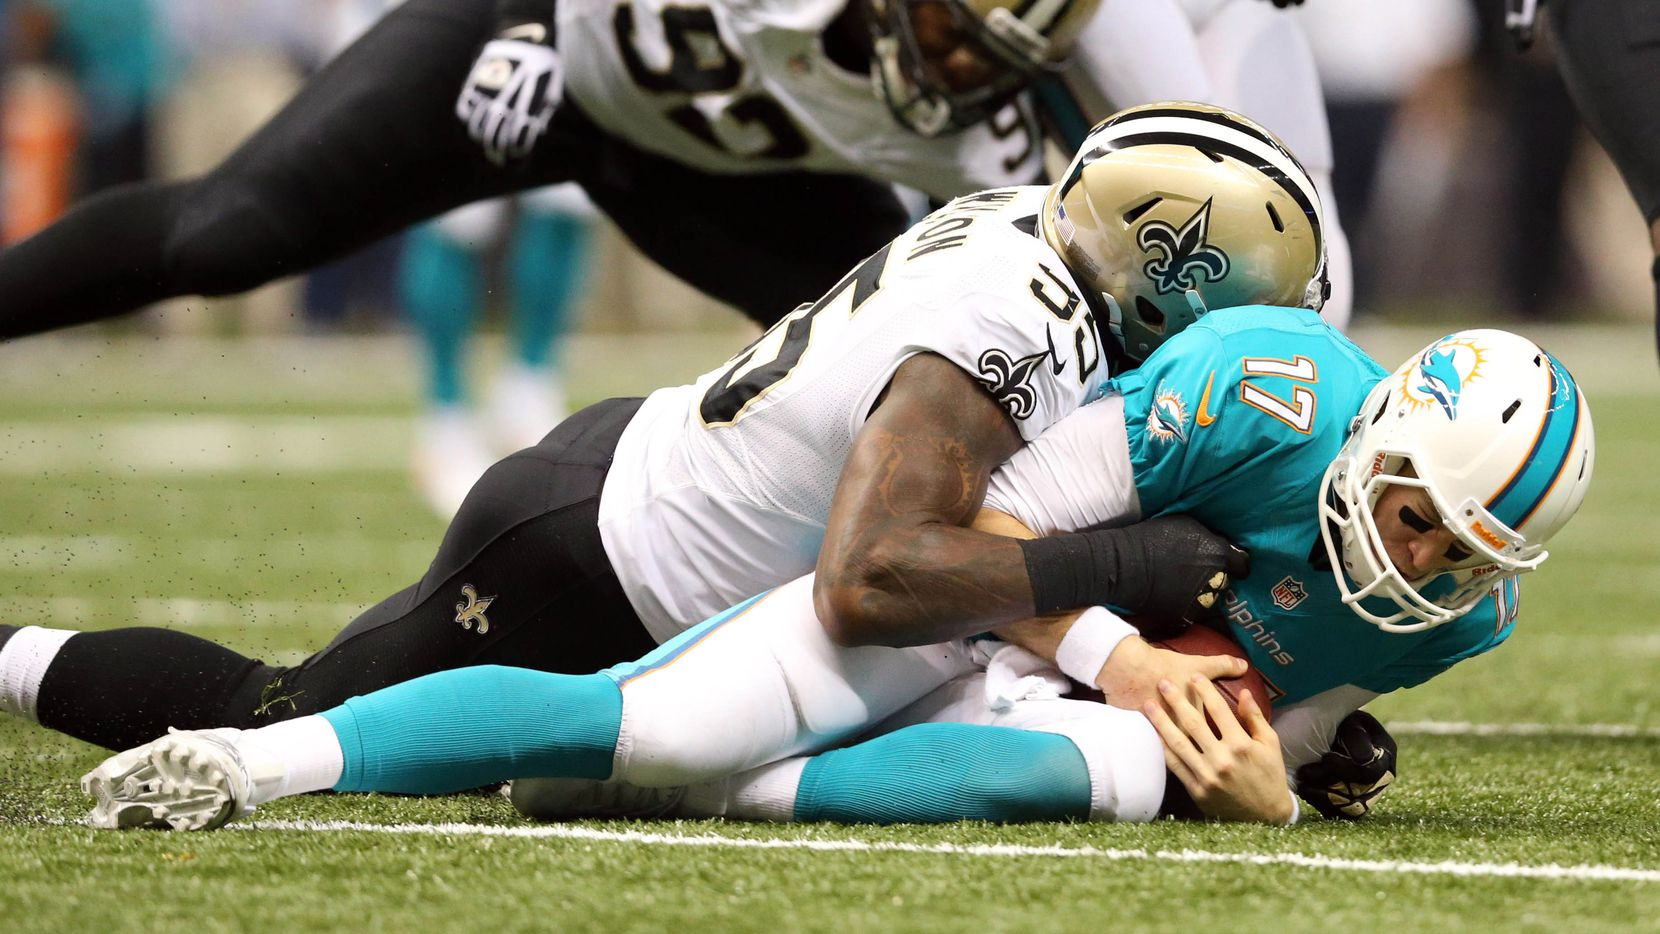 Sep 30, 2013; New Orleans, LA, USA; Miami Dolphins quarterback Ryan Tannehill (17) is sacked by New Orleans Saints linebacker Martez Wilson (95) in the third quarter at Mercedes-Benz Superdome. Mandatory Credit: Crystal LoGiudice-USA TODAY Sports